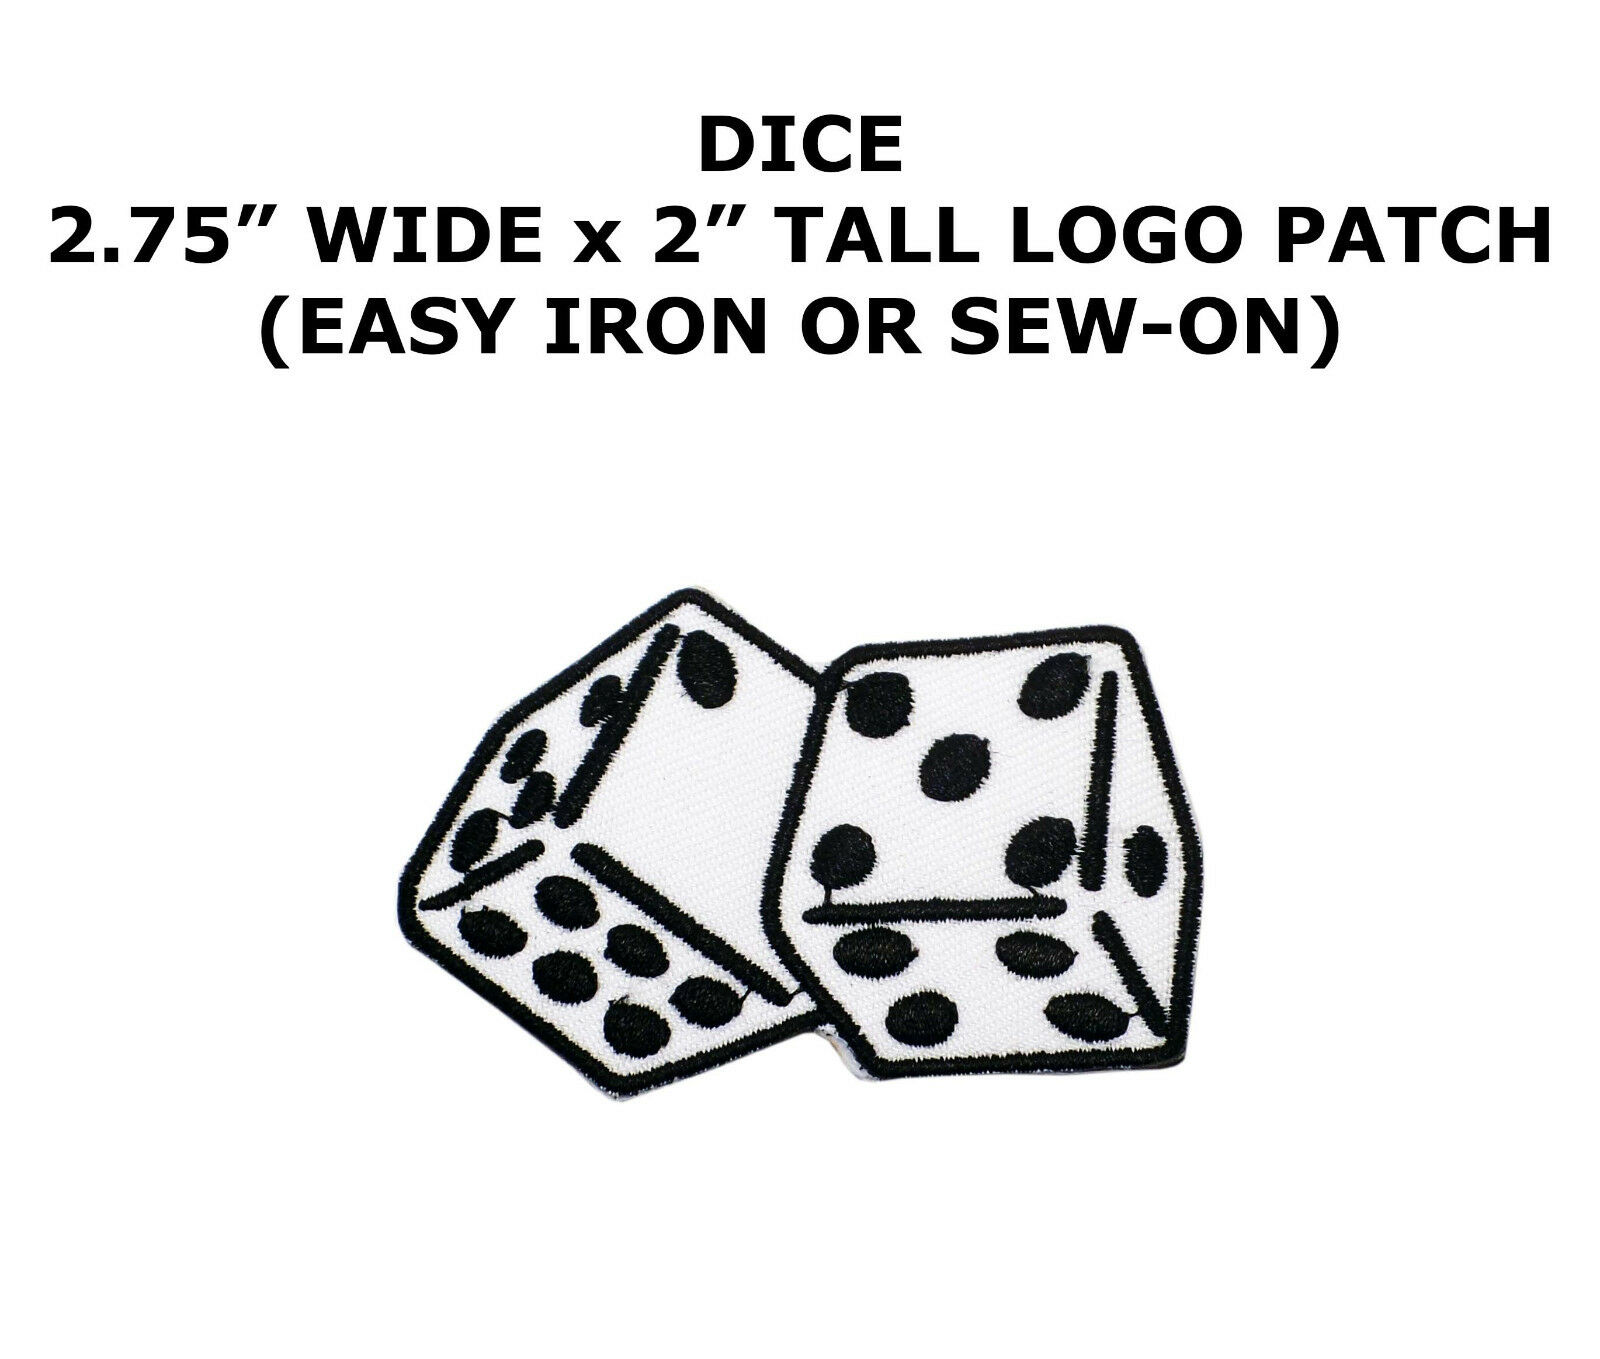 10 Pcs/lot Number 0-9 Patches Iron On DIY Embroidered Appliques Sew On